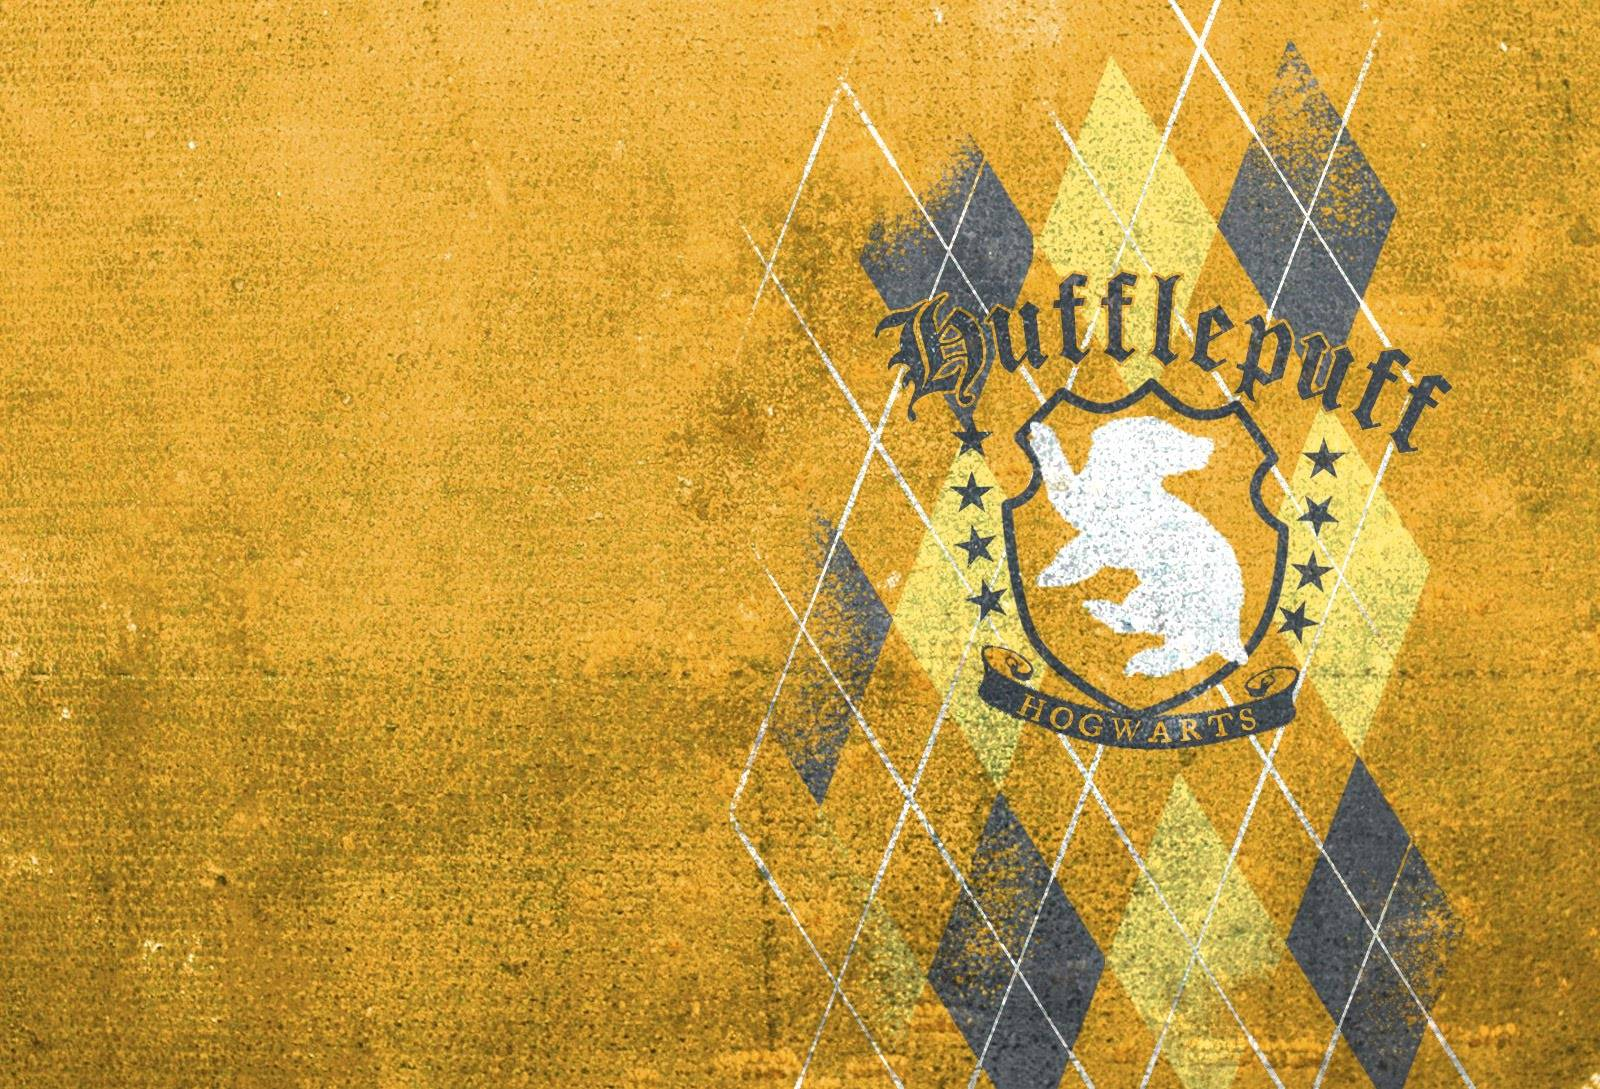 Harry Potter Hufflepuff Iphone Wallpapers Top Free Harry